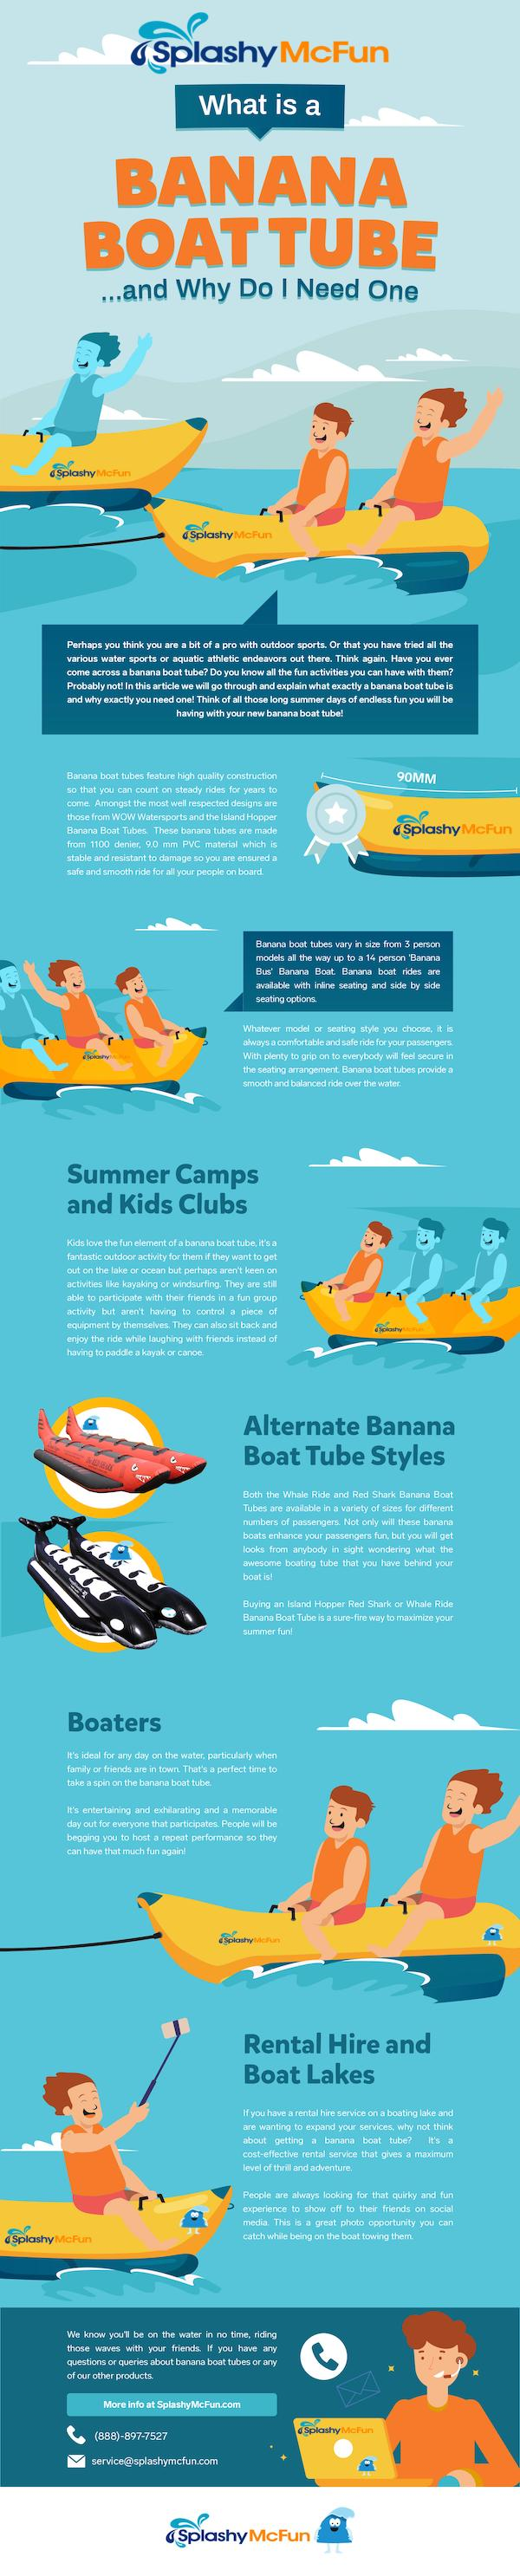 What is a Banana Boat Tube and Why Do I Need One?  An Infographic